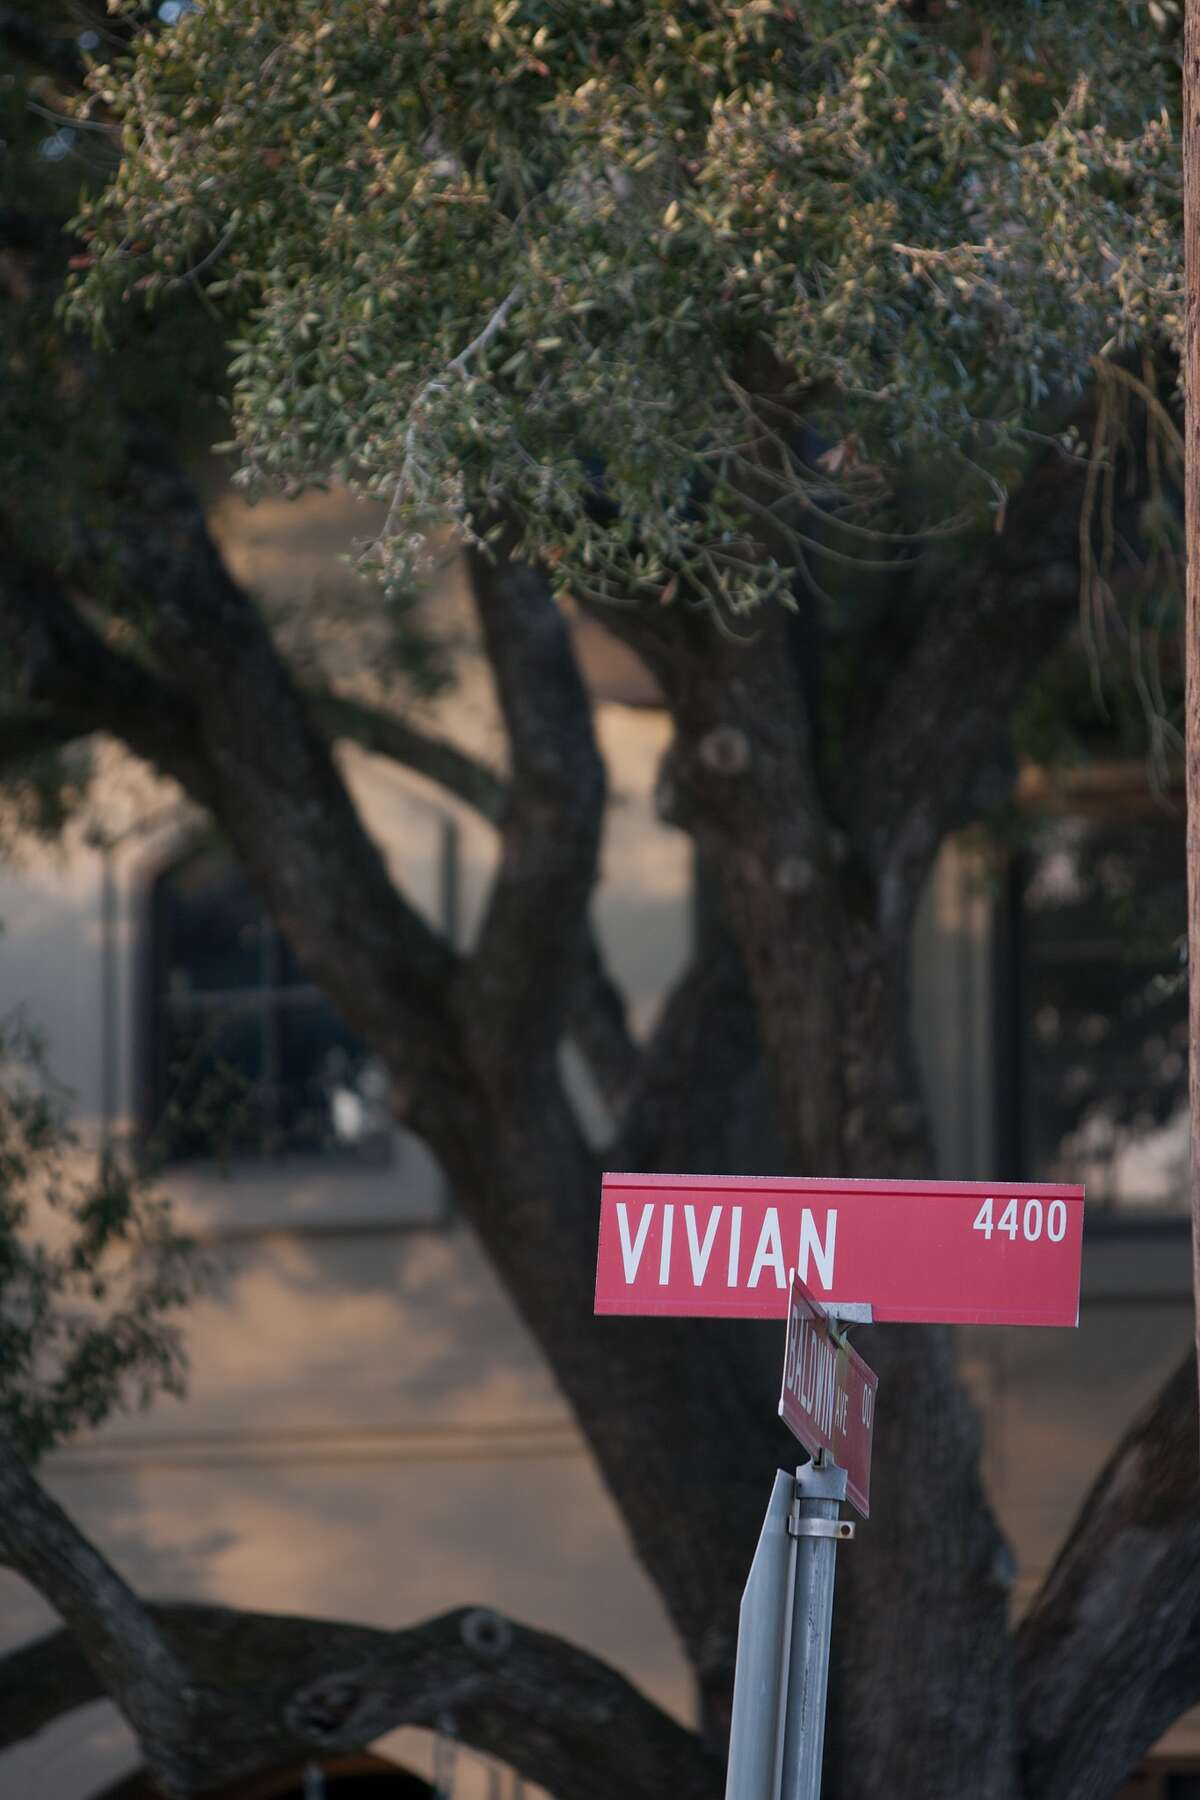 This is one of the many street names in Bellaire that come from women's names.